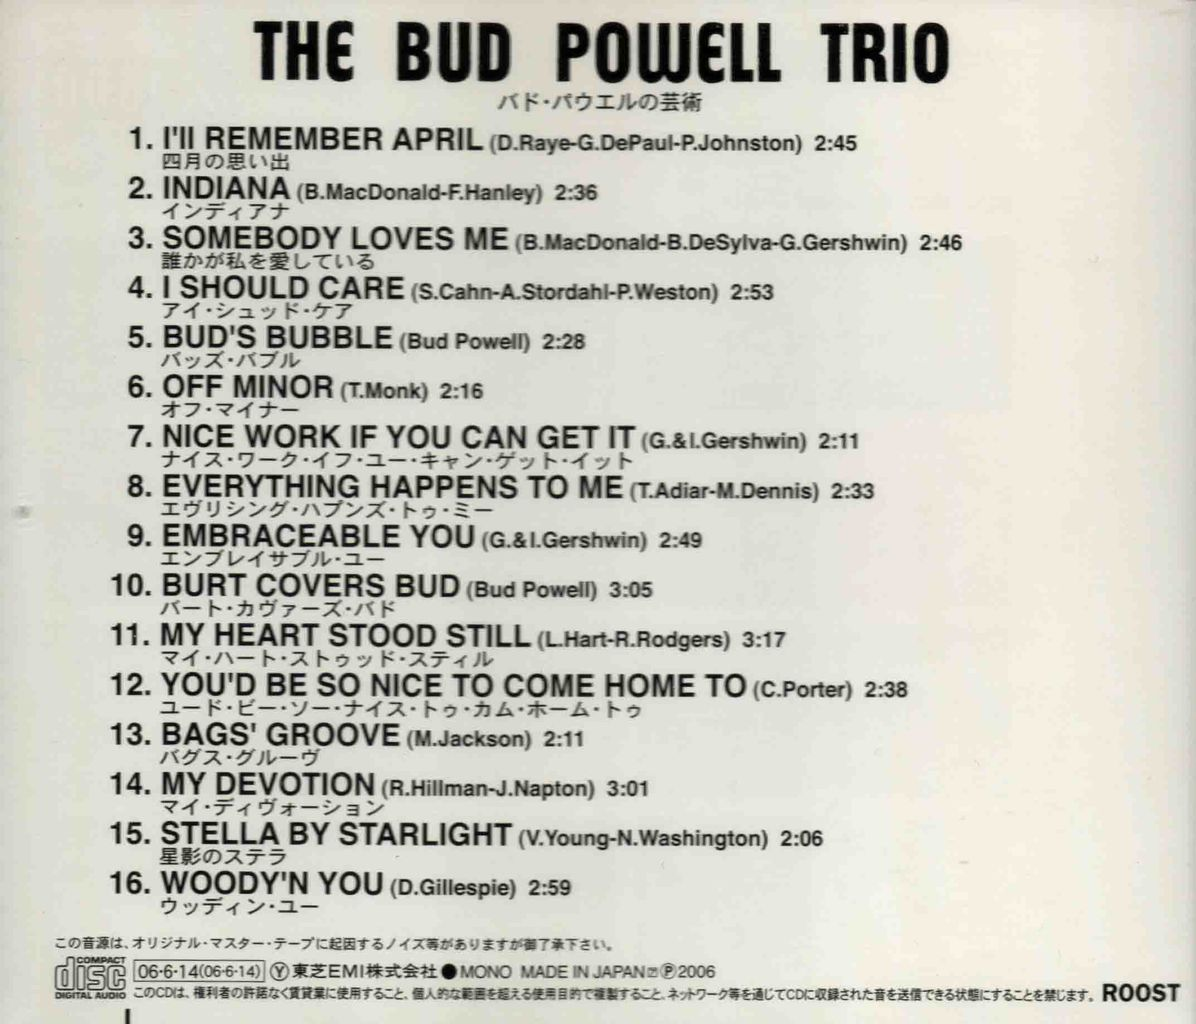 THE BUD POWELL TRIO-2